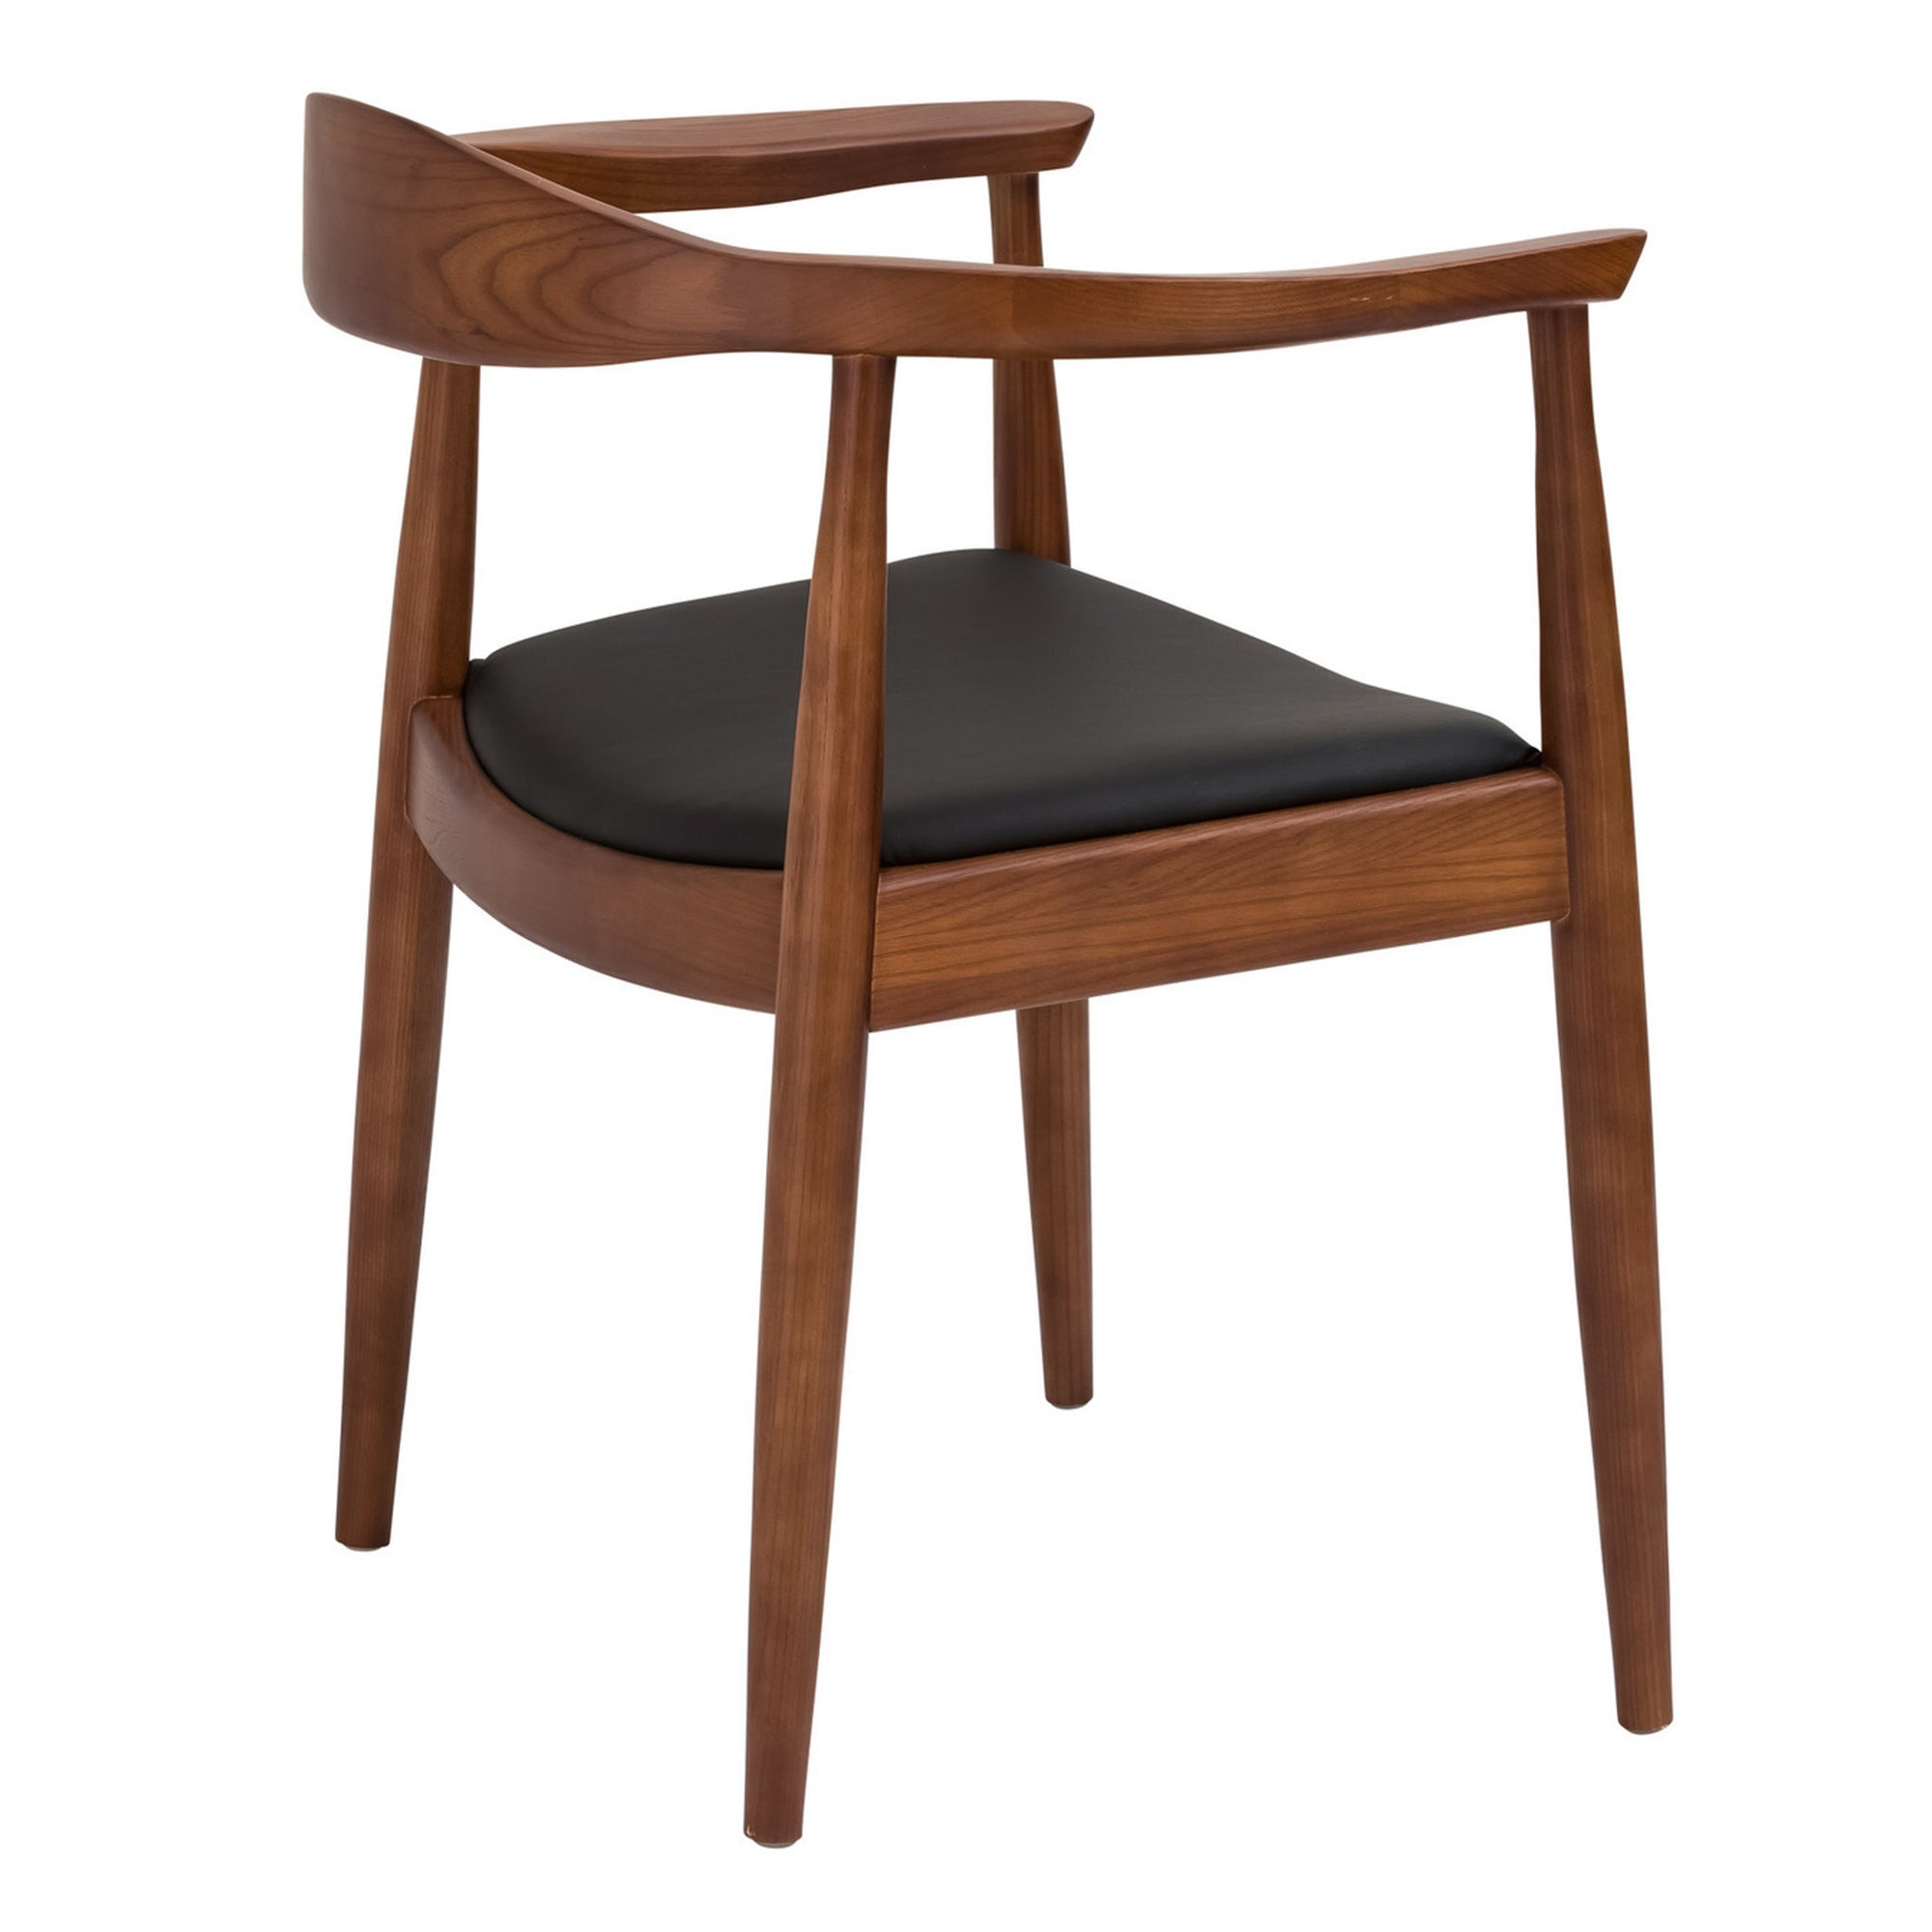 Dining Chair  Solid Ash wood and Genuin Leather WS-037 -  كرسي طعام خشب رمادي صلب وجلد طبيعي - Shop Online Furniture and Home Decor Store in Dubai, UAE at ebarza